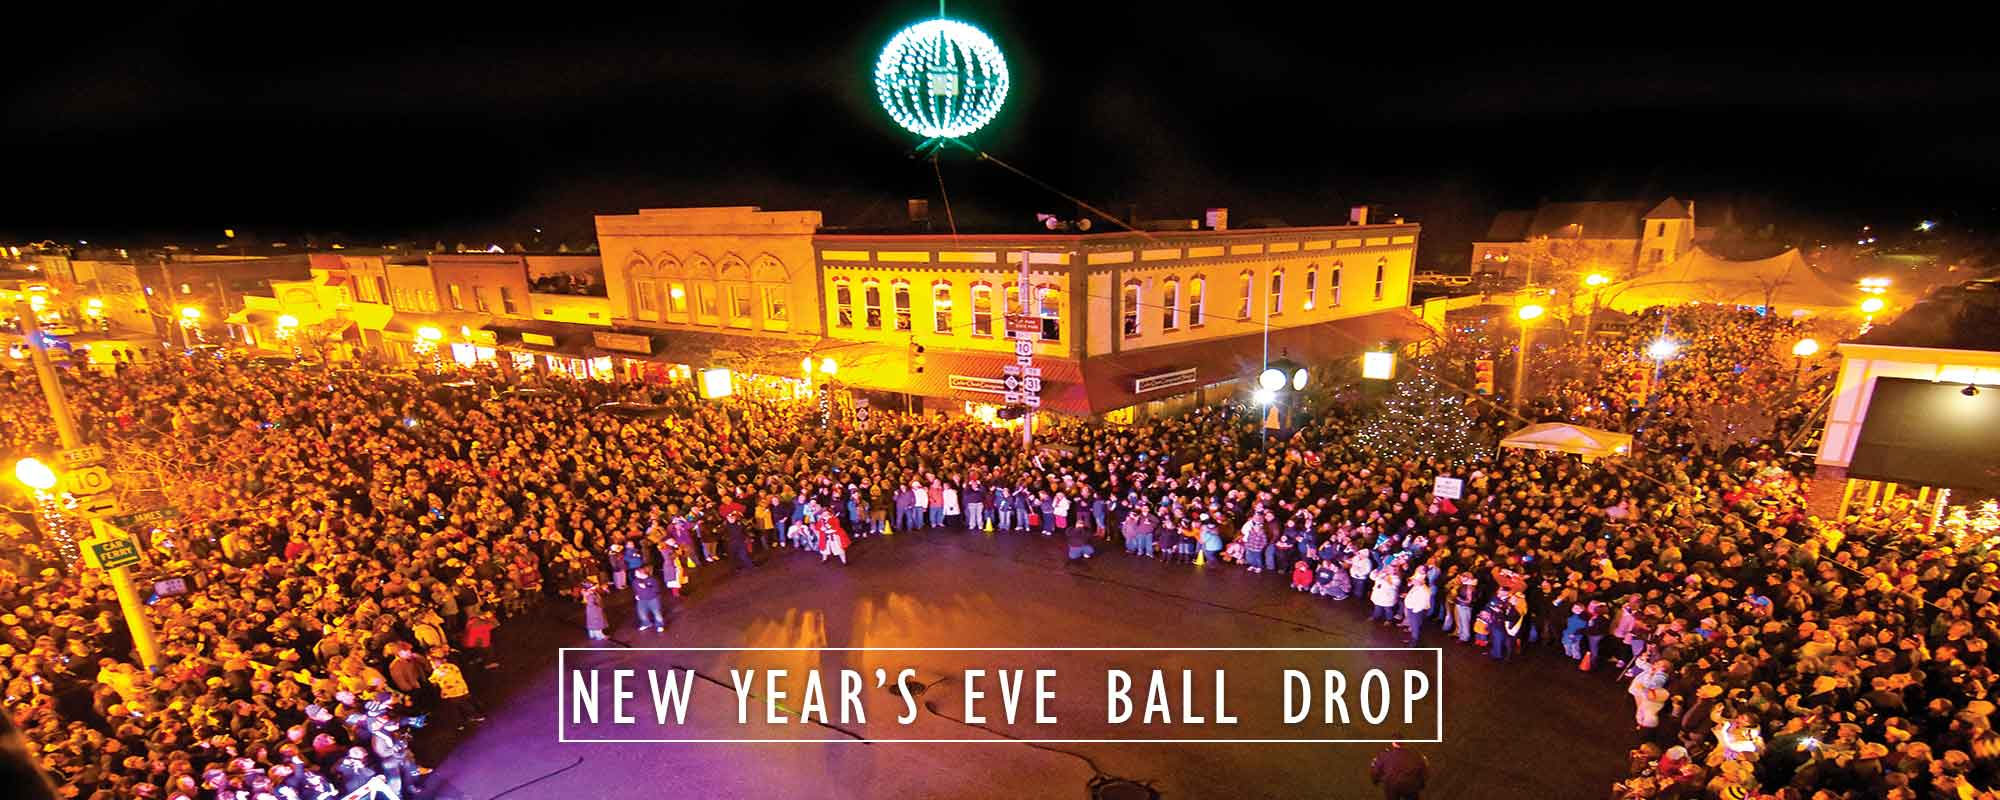 michigan s largest nye ball drop is in ludington mi pure ludington nye ball drop is in ludington mi